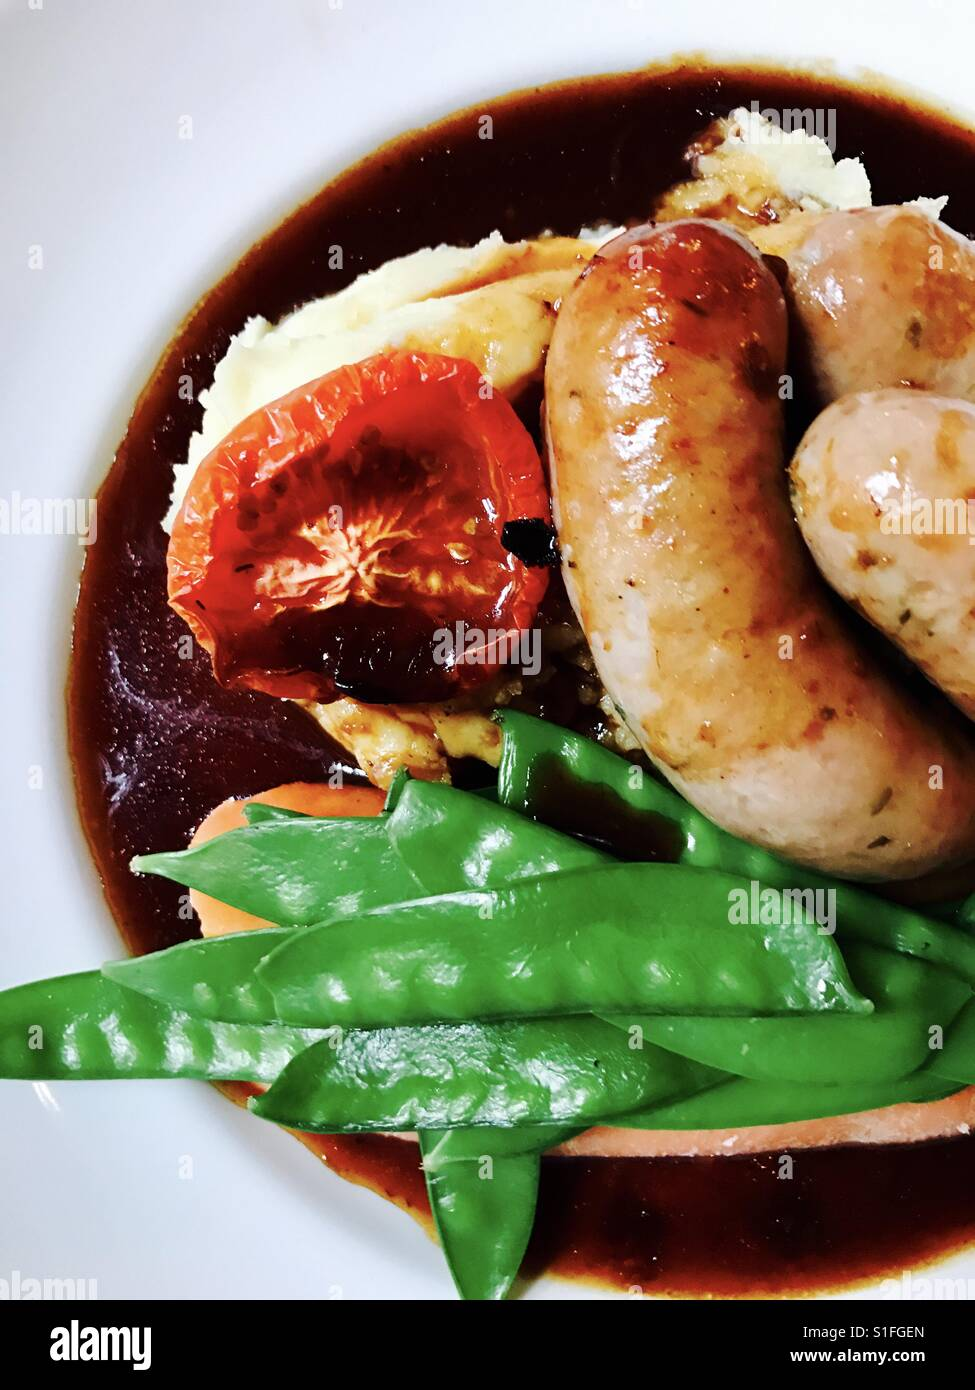 Sausage and mash with greens and tomato Stock Photo